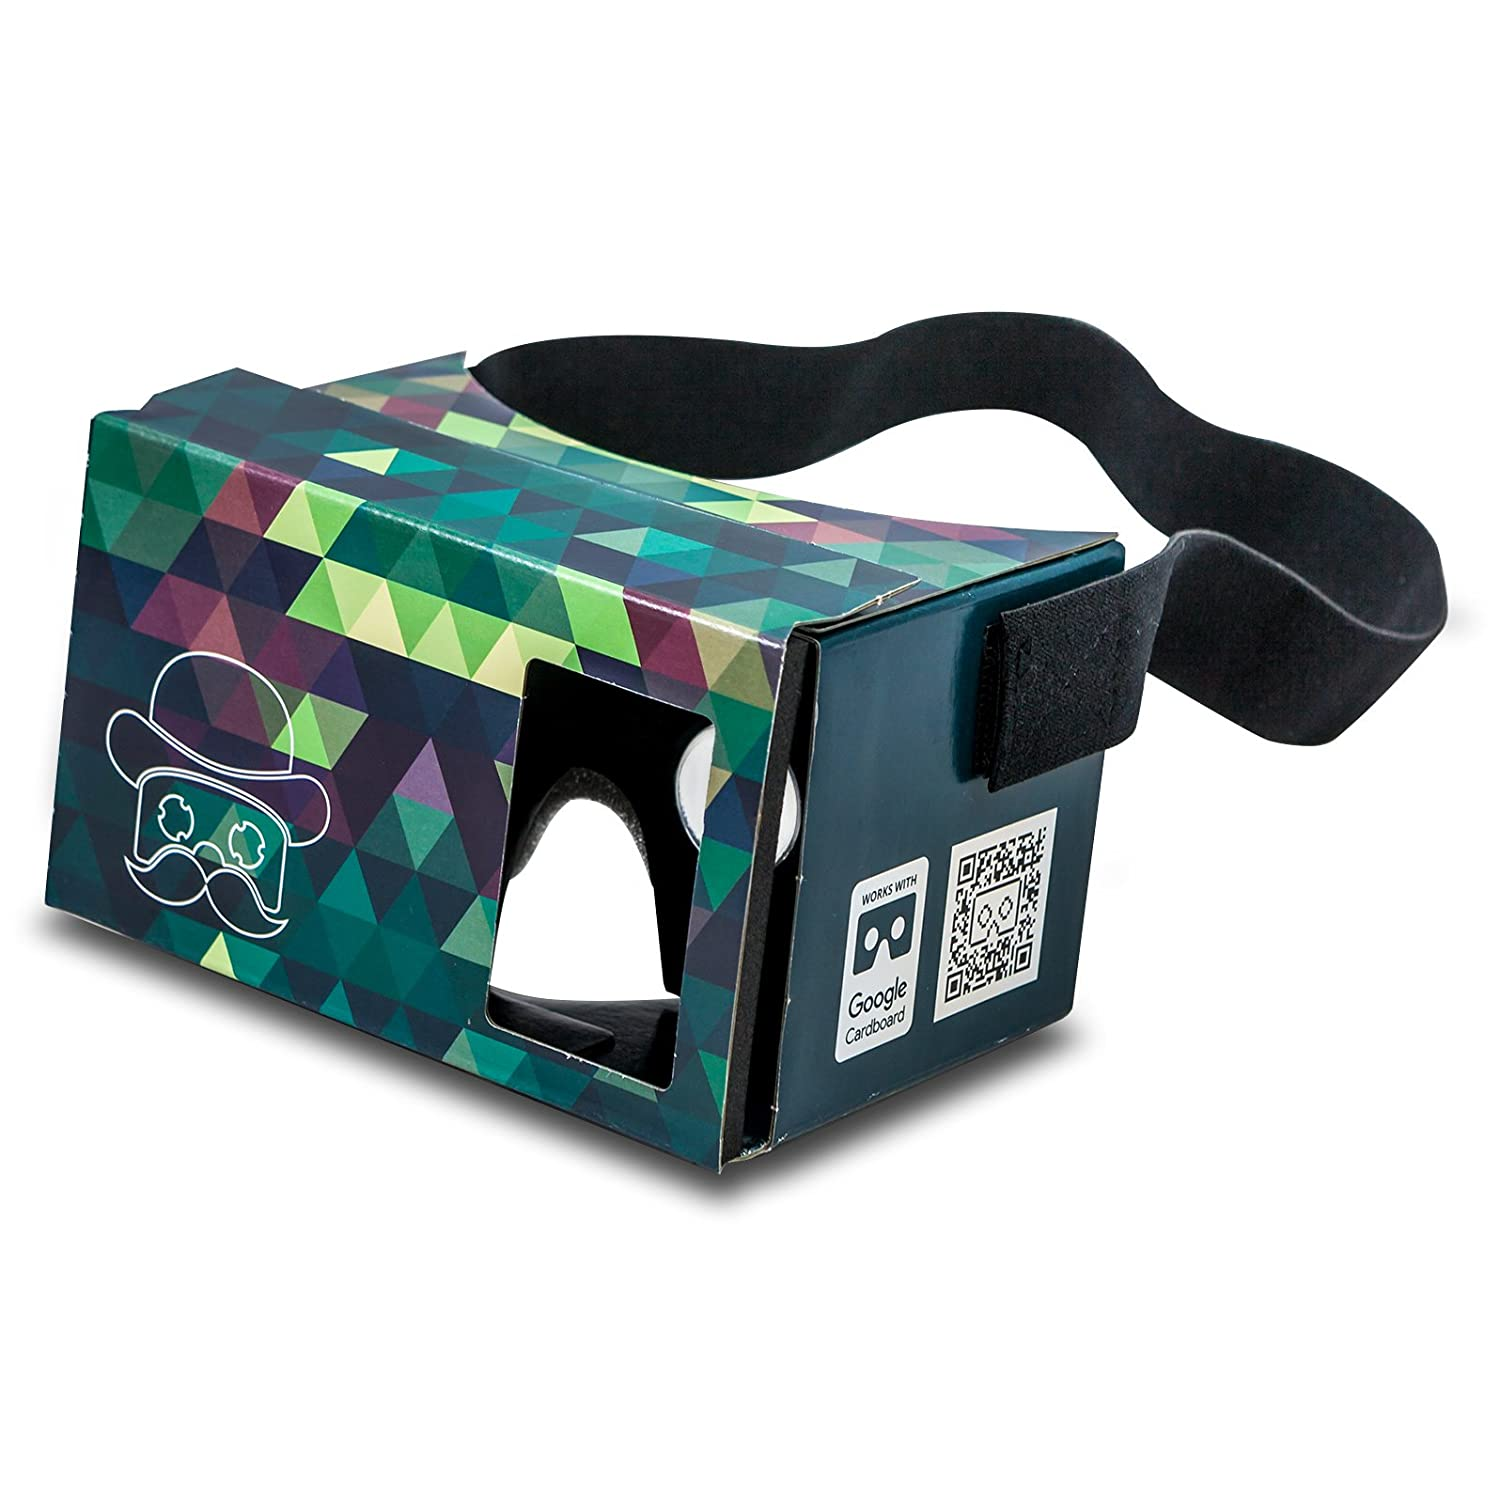 02d3bf994f7 Google Cardboard POP! Cardboard + Free Head Strap and Cushion. for Android  and iPhone up to 6 inches. Including Lenses. 3D Glasses VR Glasses Virtual  ...